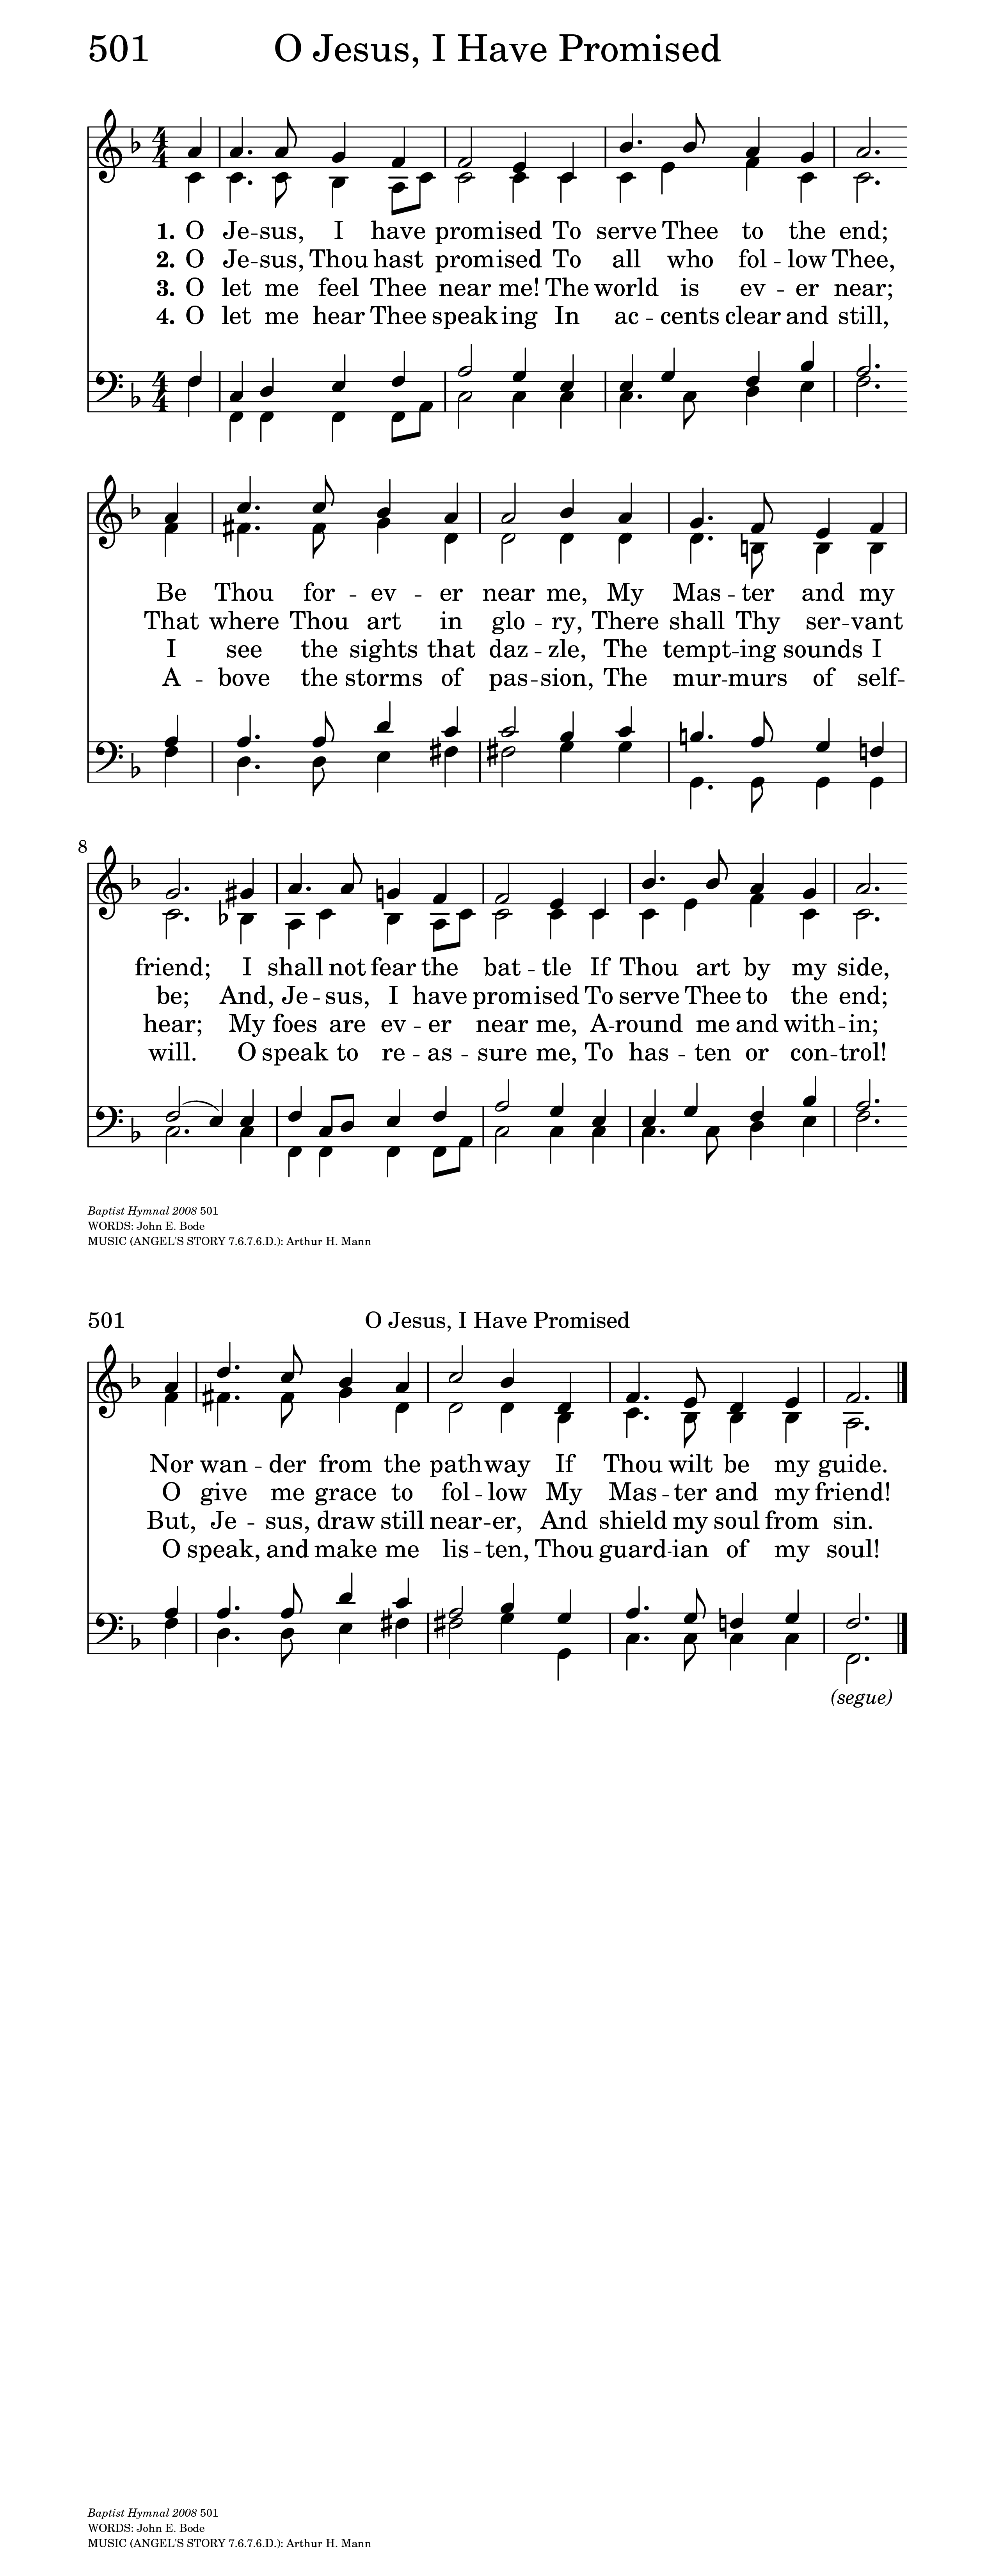 O Jesus, I have promised | Hymnary org